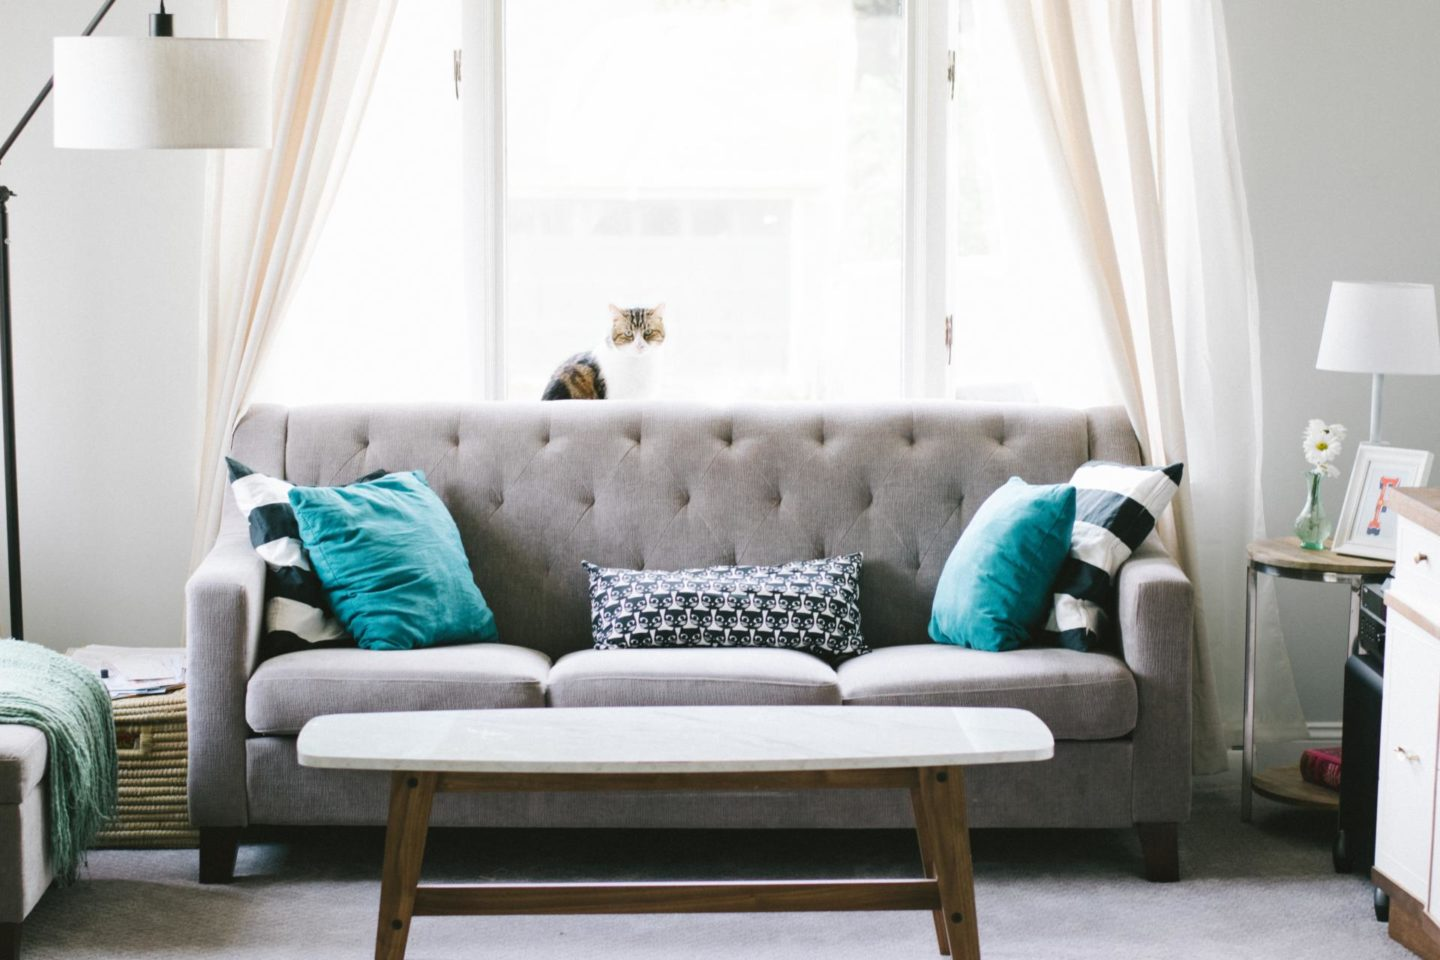 A guide to finding the perfect sofa